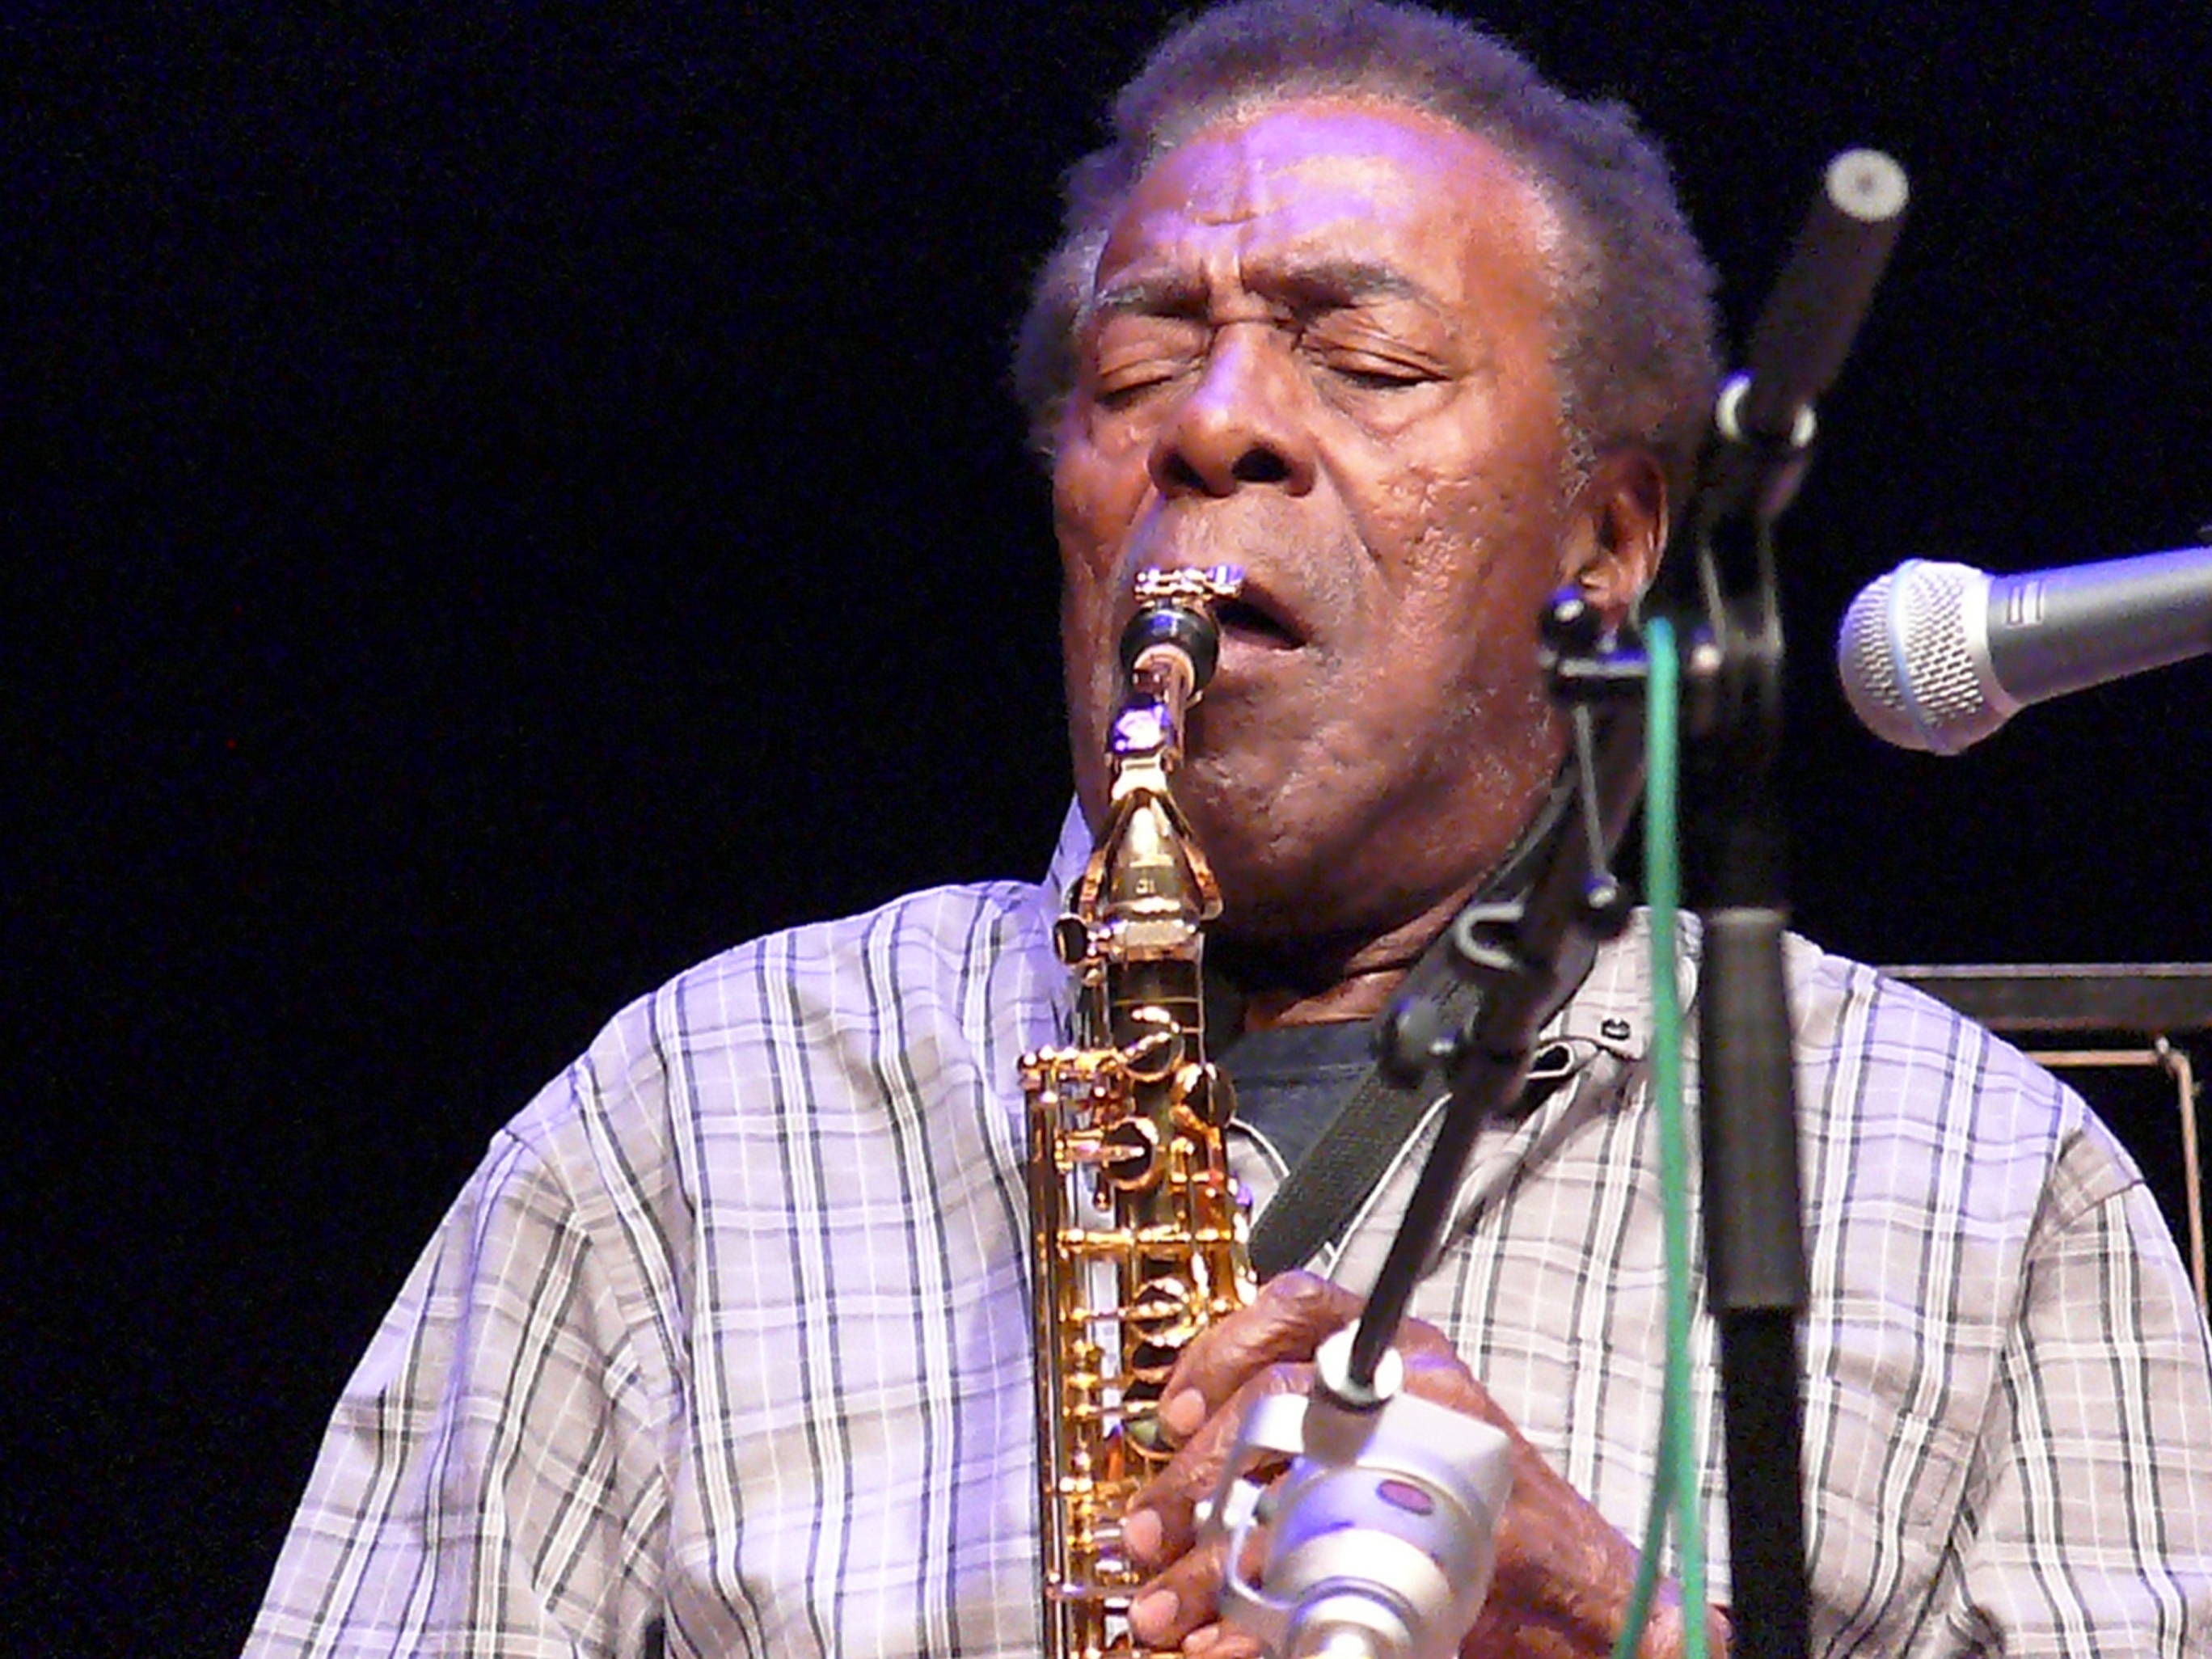 Sonny simmons at the vision festival, new york in june 2013